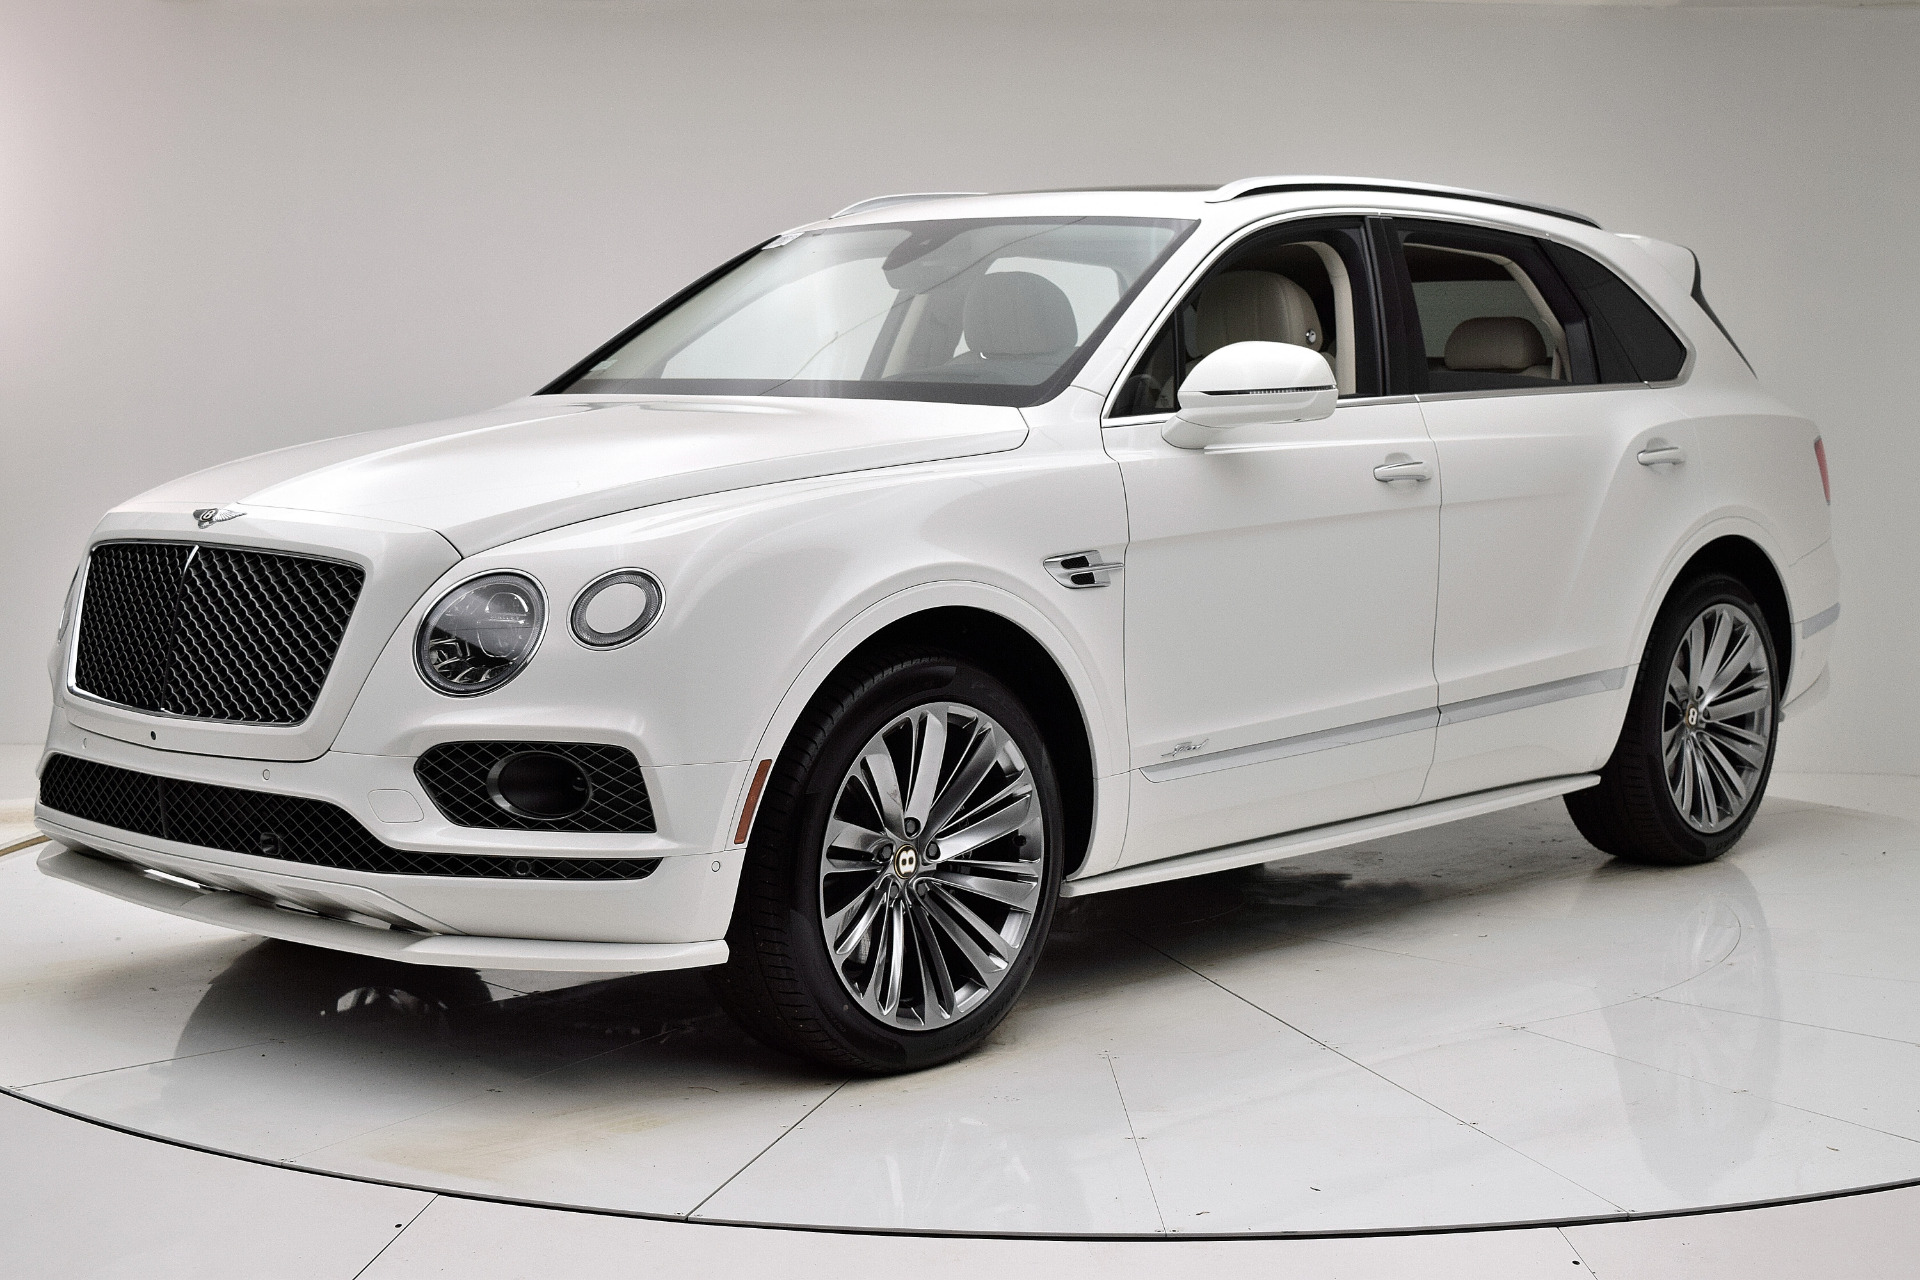 New 2020 Bentley Bentayga Speed For Sale 259 300 Bentley Palmyra N J Stock 20be131